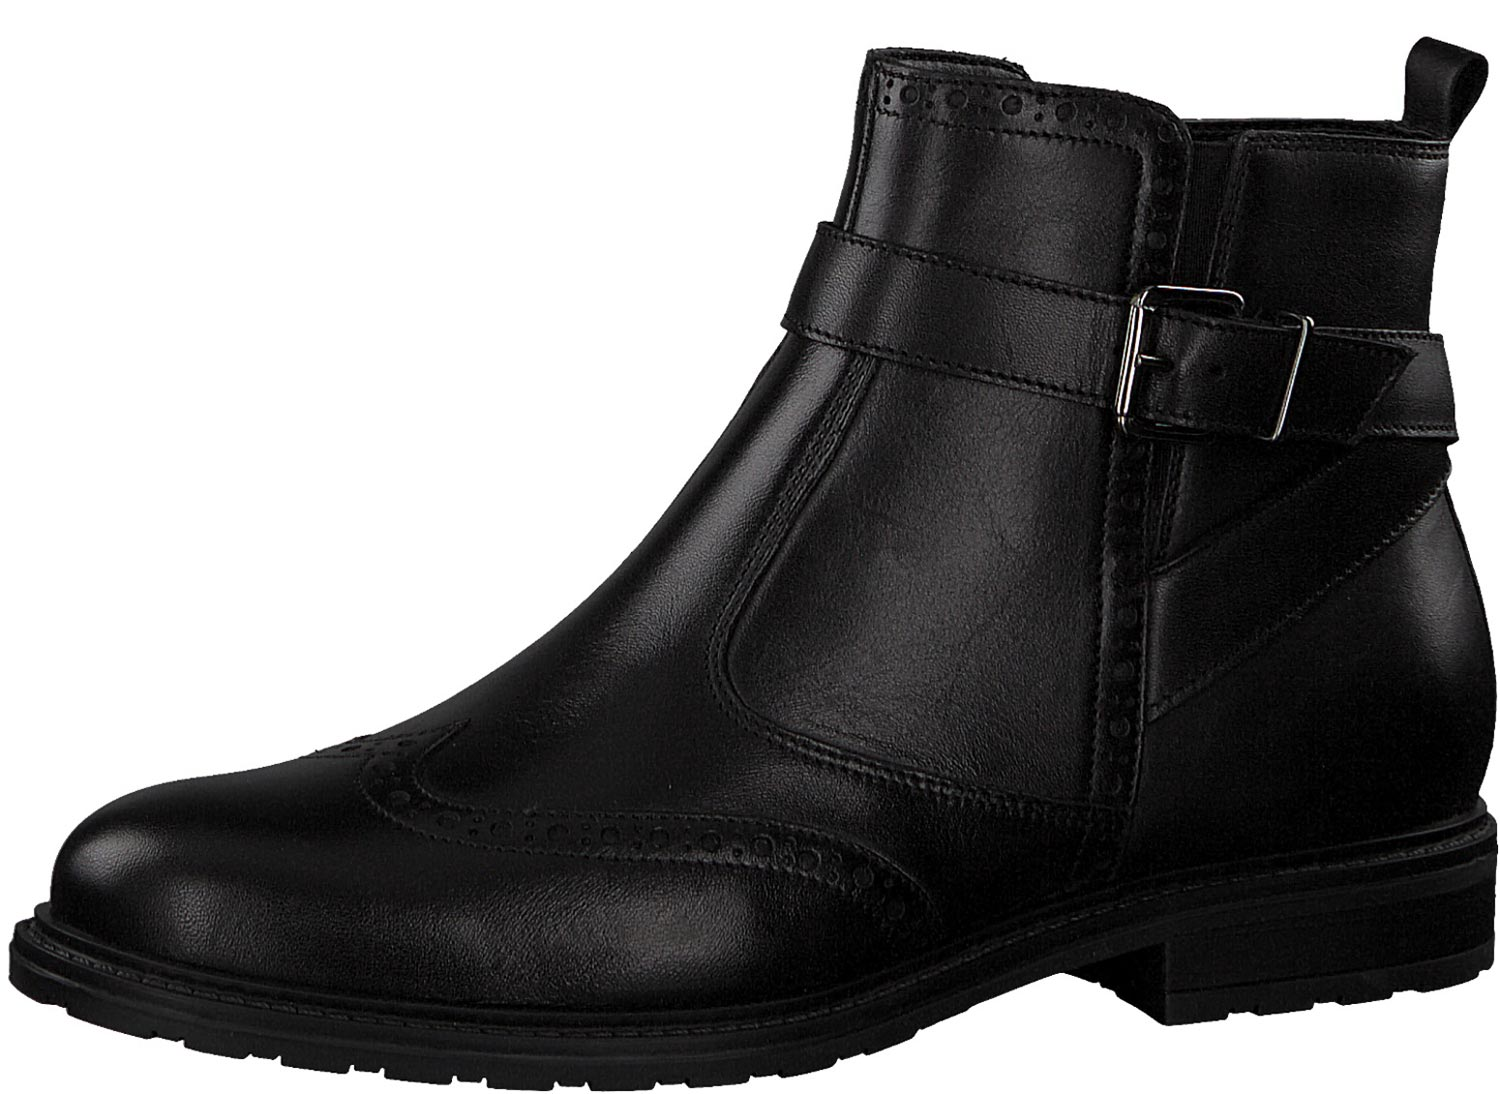 Tamaris-Women-039-s-Boots-Ankle-Boots-Winter-25004-21-007-Black-New